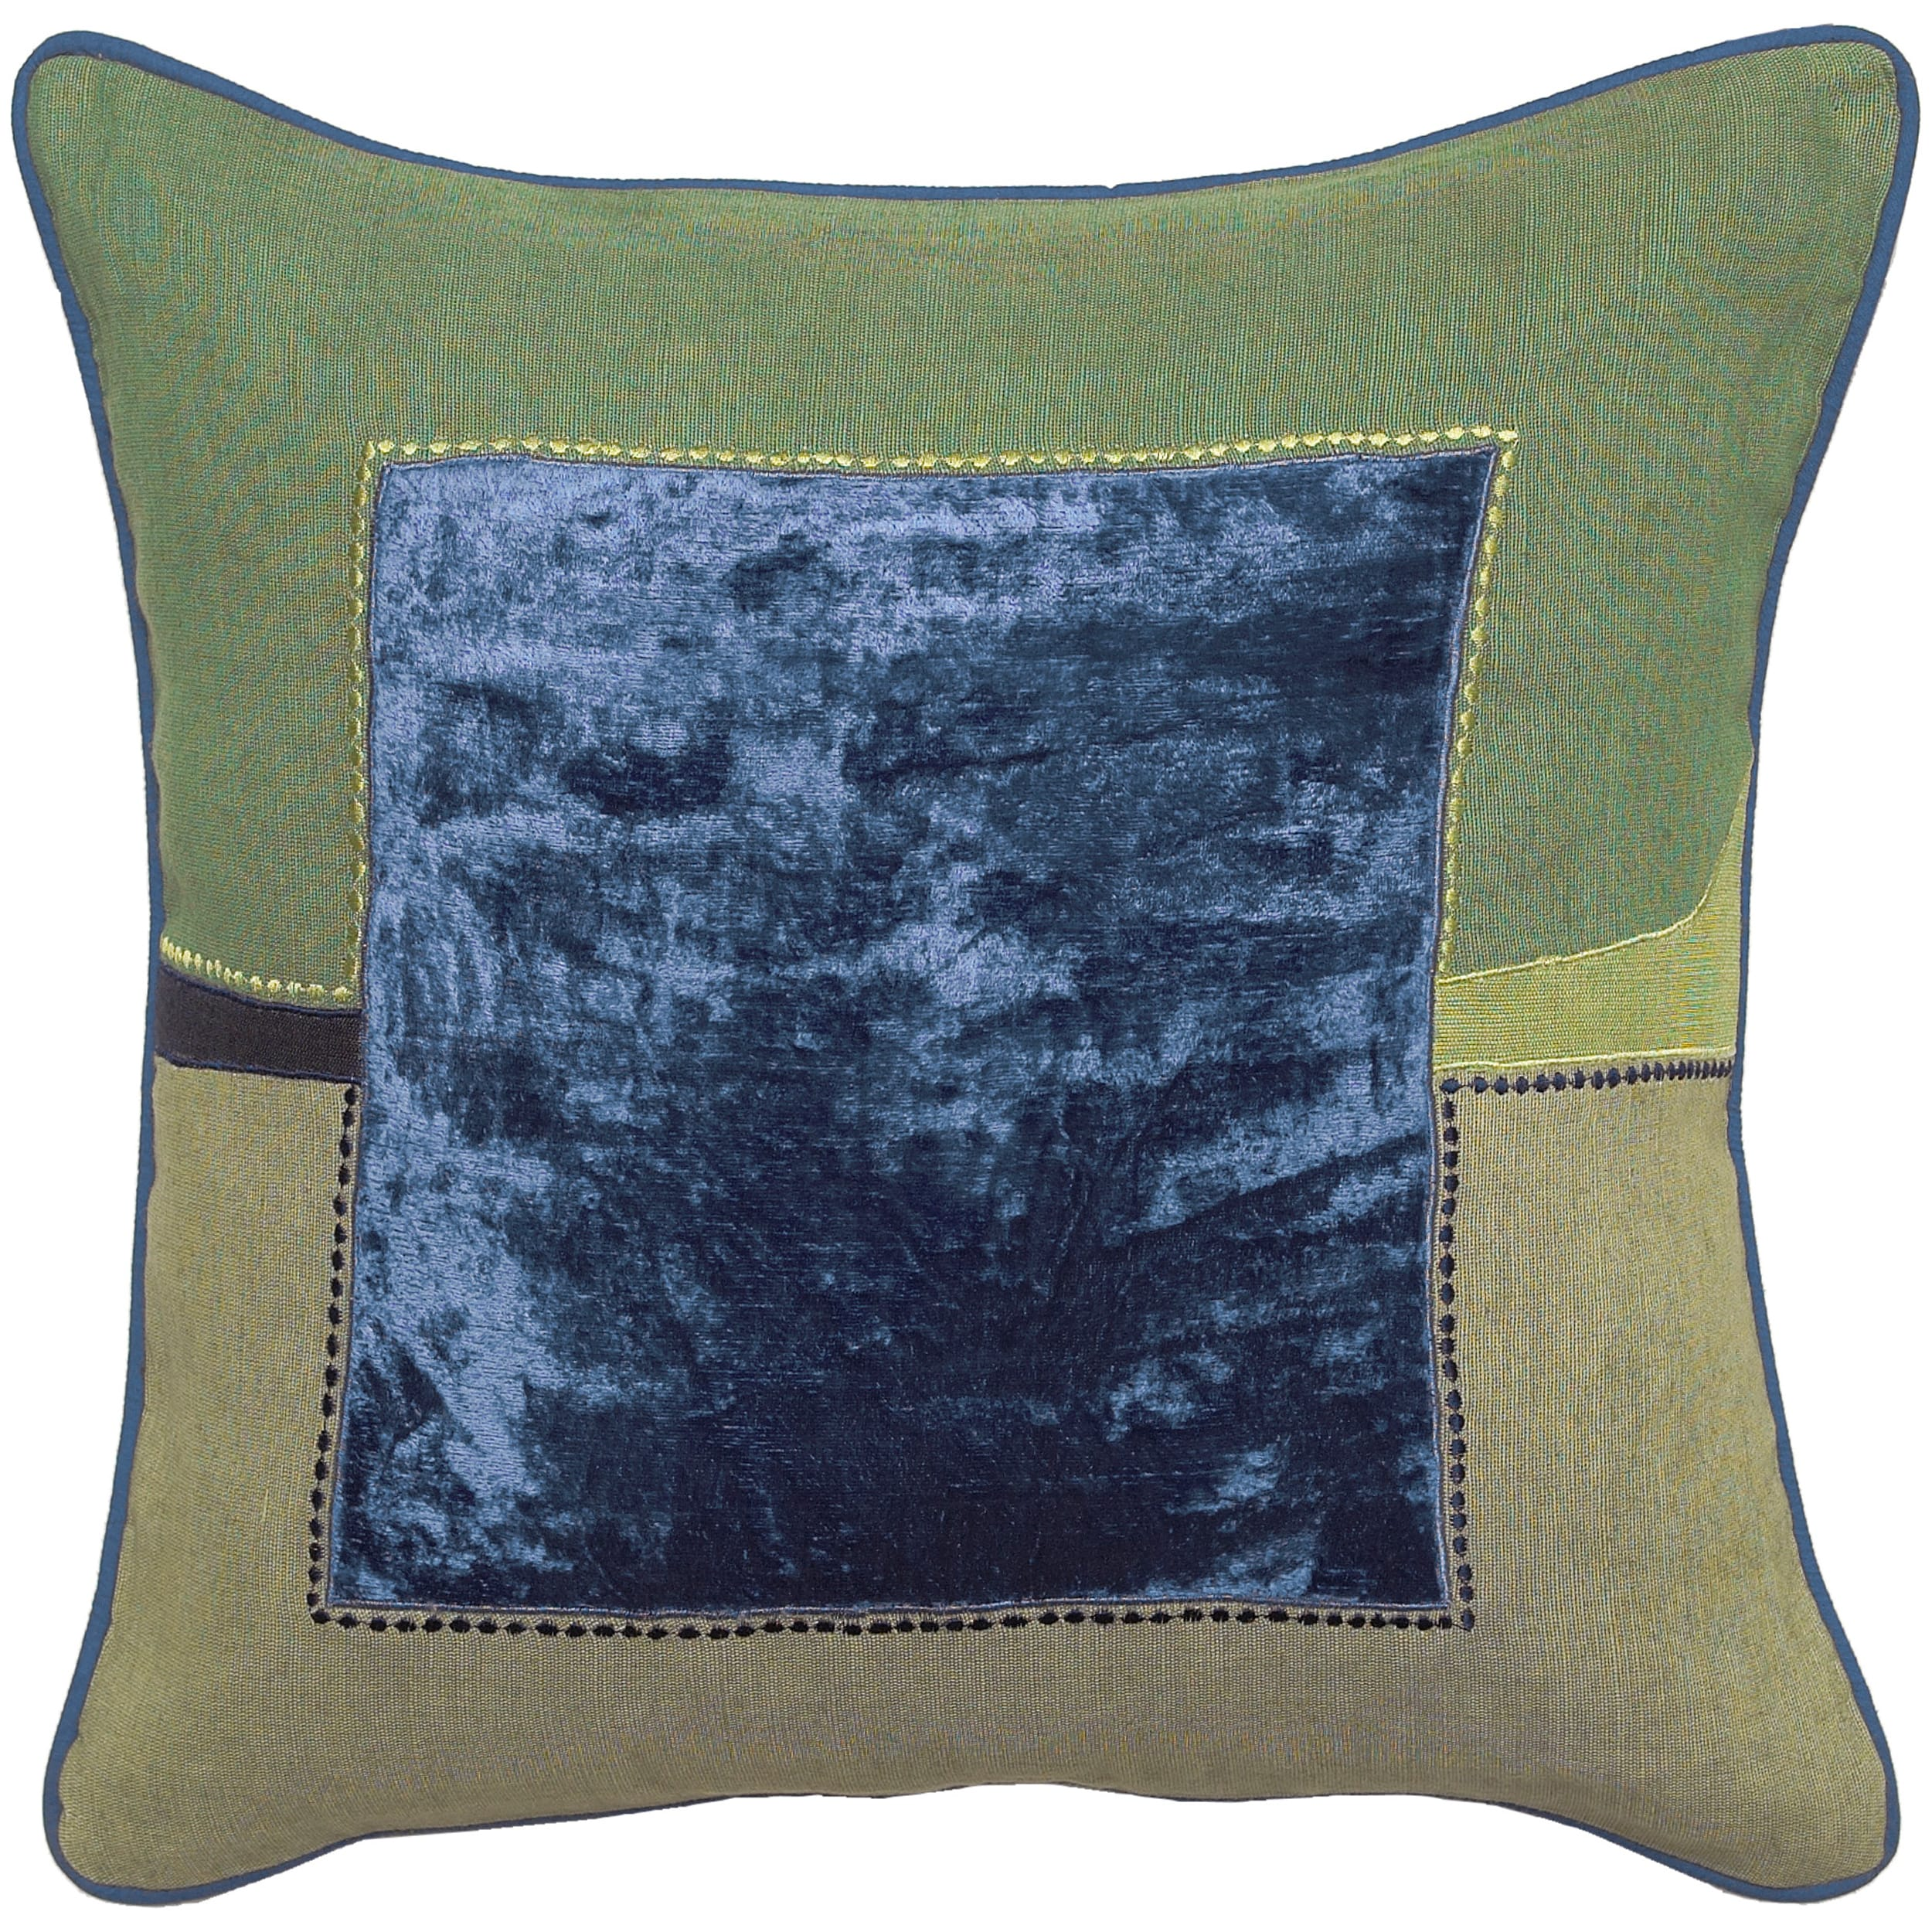 Down Filled 'Chittenden' 18-inch Square Decorative Pillow